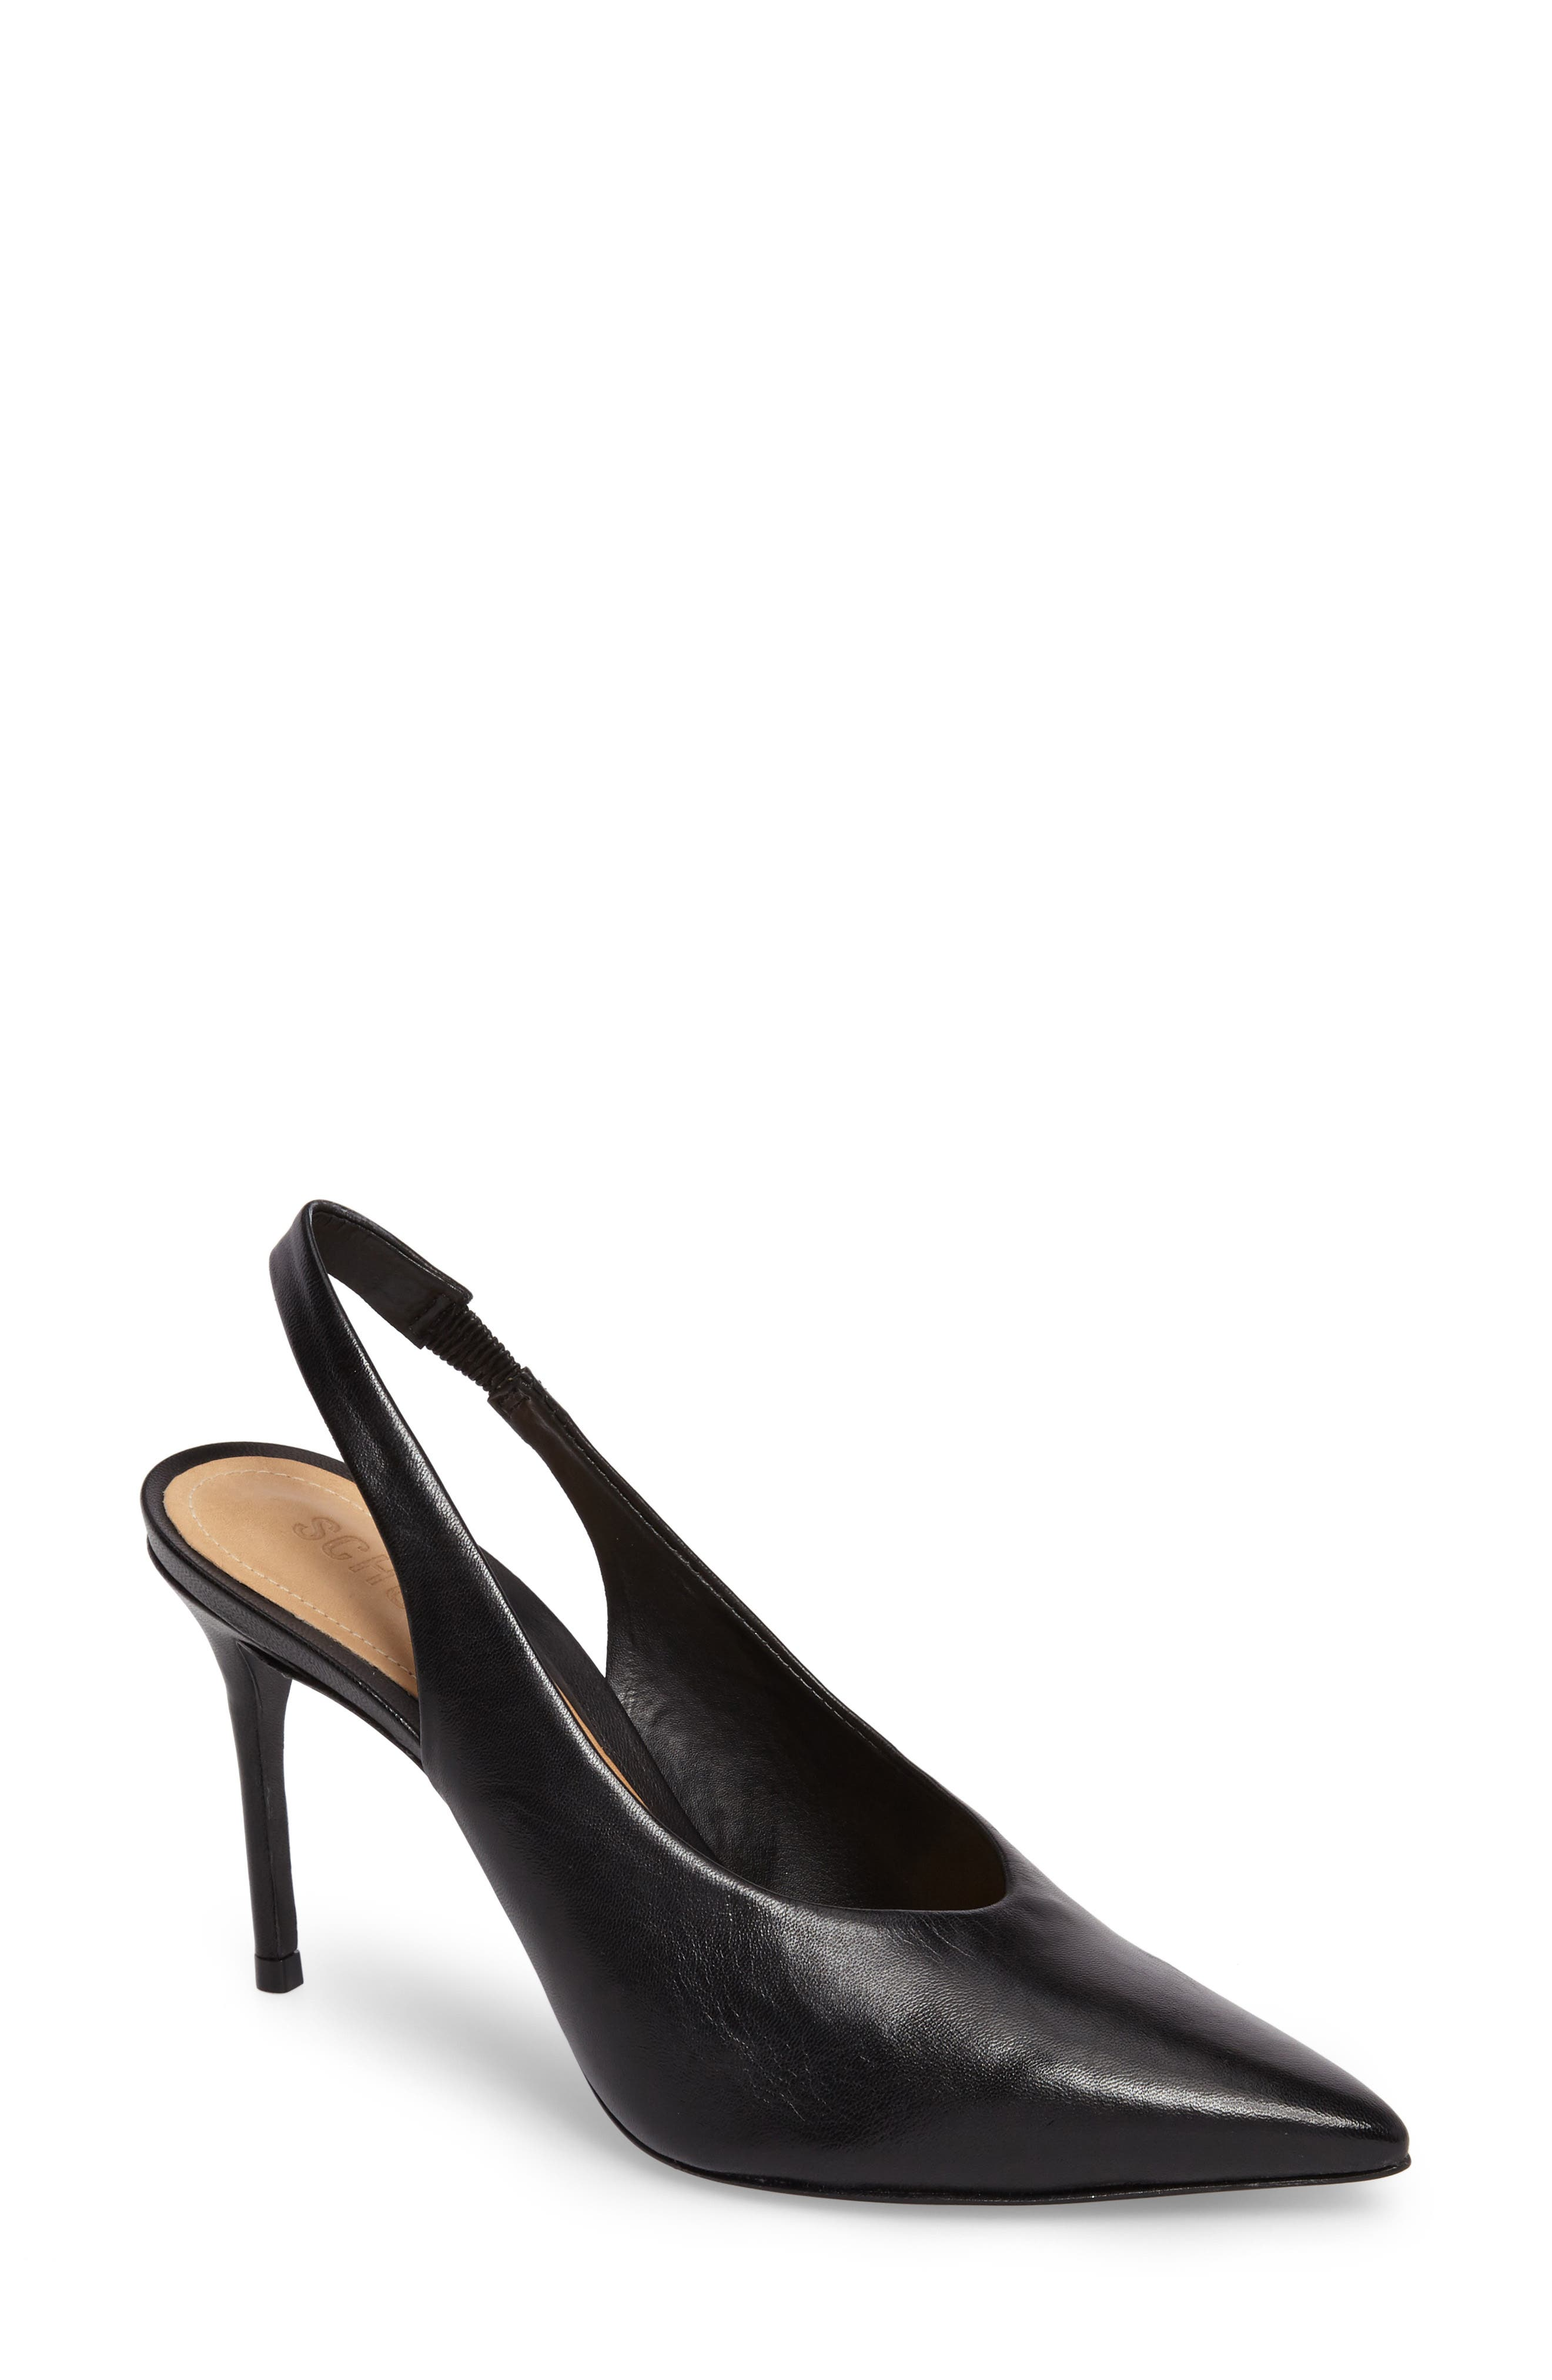 Phisalis Slingback Pump,                             Main thumbnail 1, color,                             Black Mestico Leather